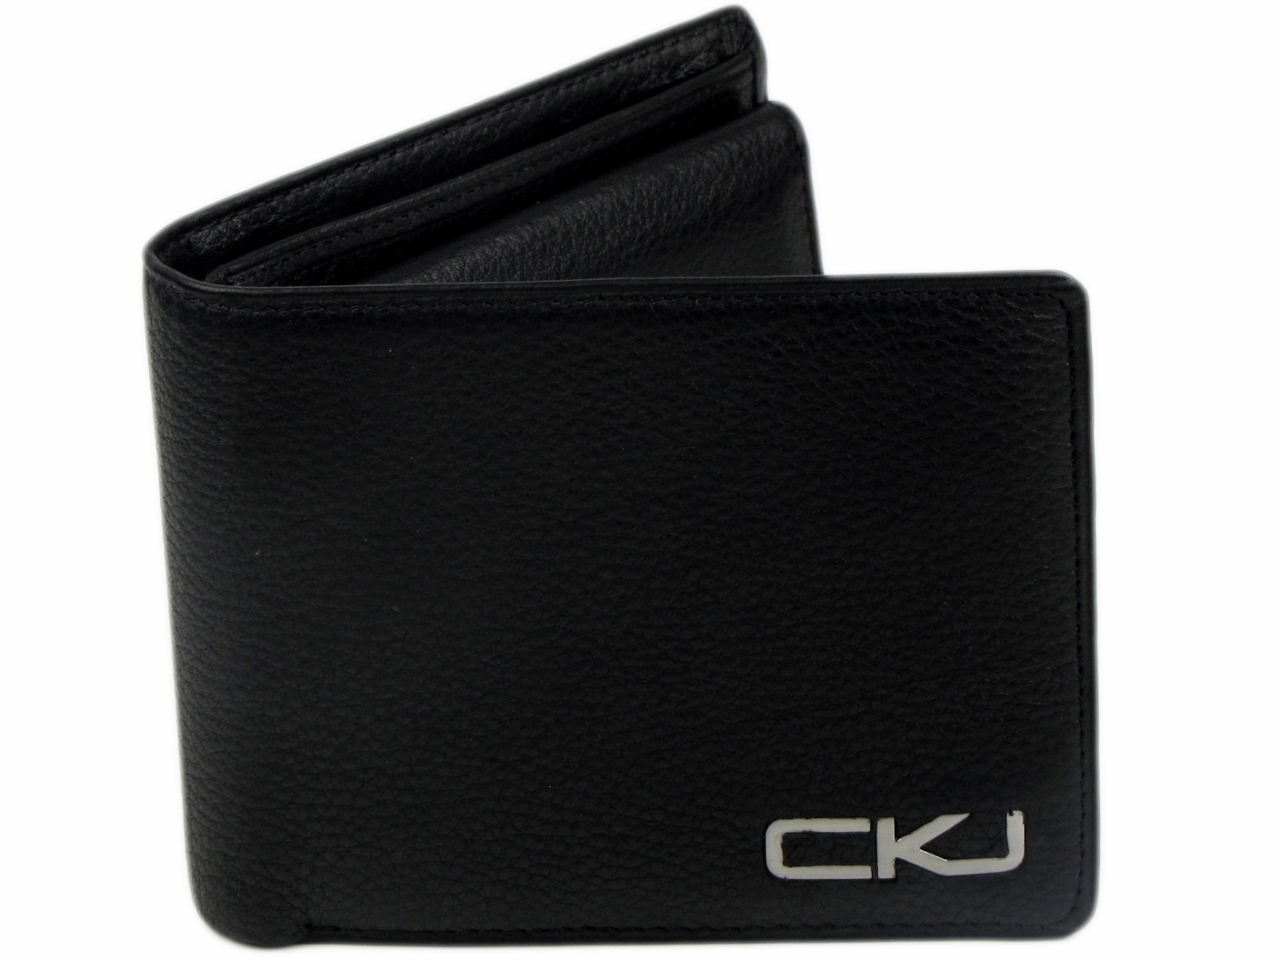 Mens Calvin Klein Jeans Leather Bi- Fold Wallet Black Gift Boxed Enlarged Preview